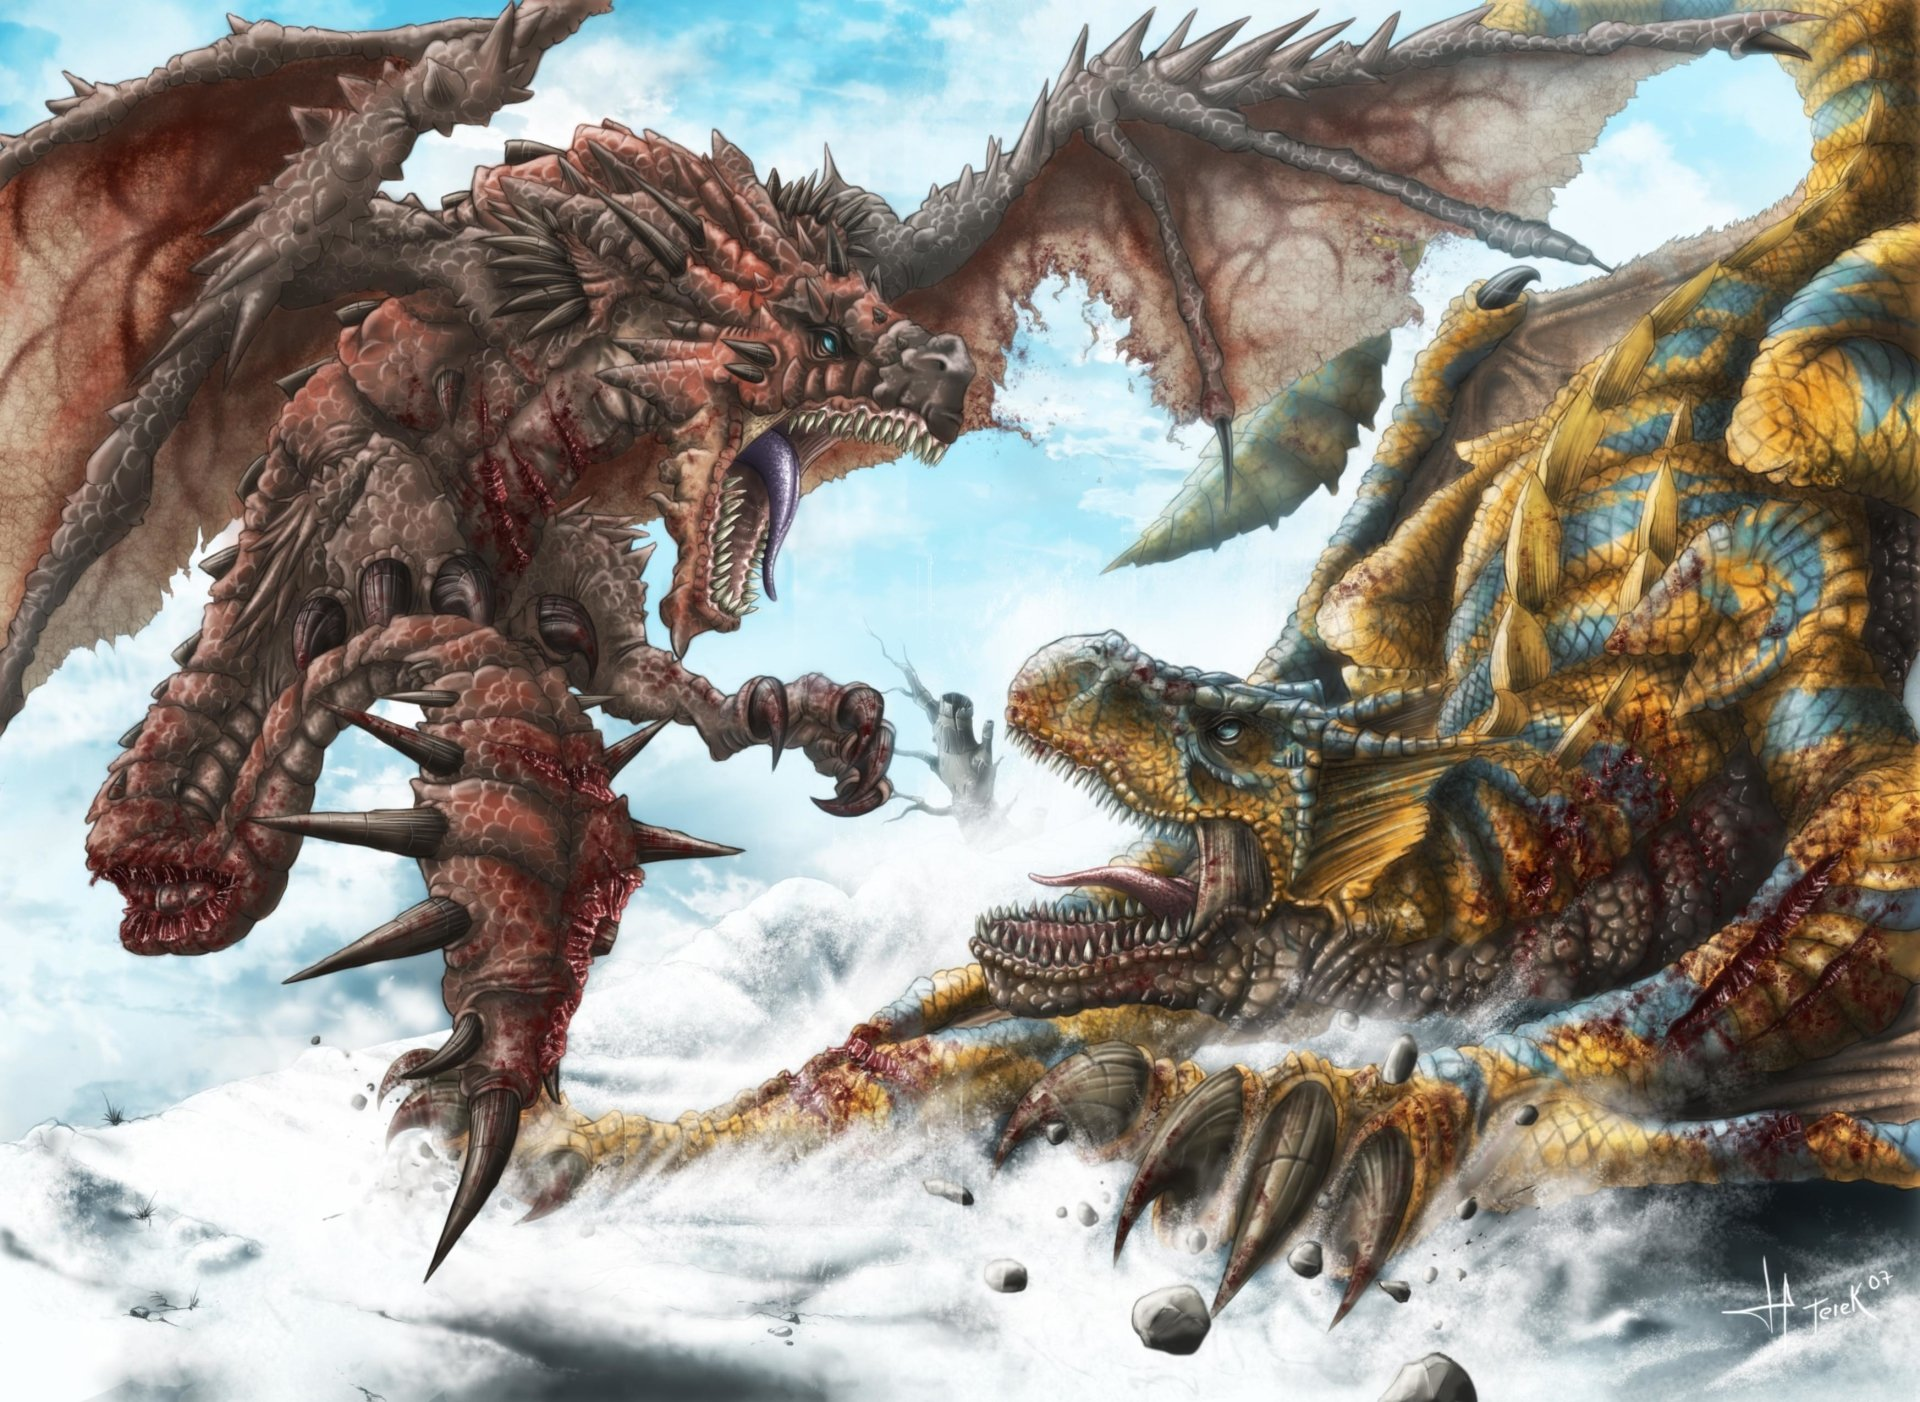 Video Game - Monster Hunter Freedom Unite  Dragon Rathalos (Monster Hunter) Tigrex (Monster Hunter) Wallpaper